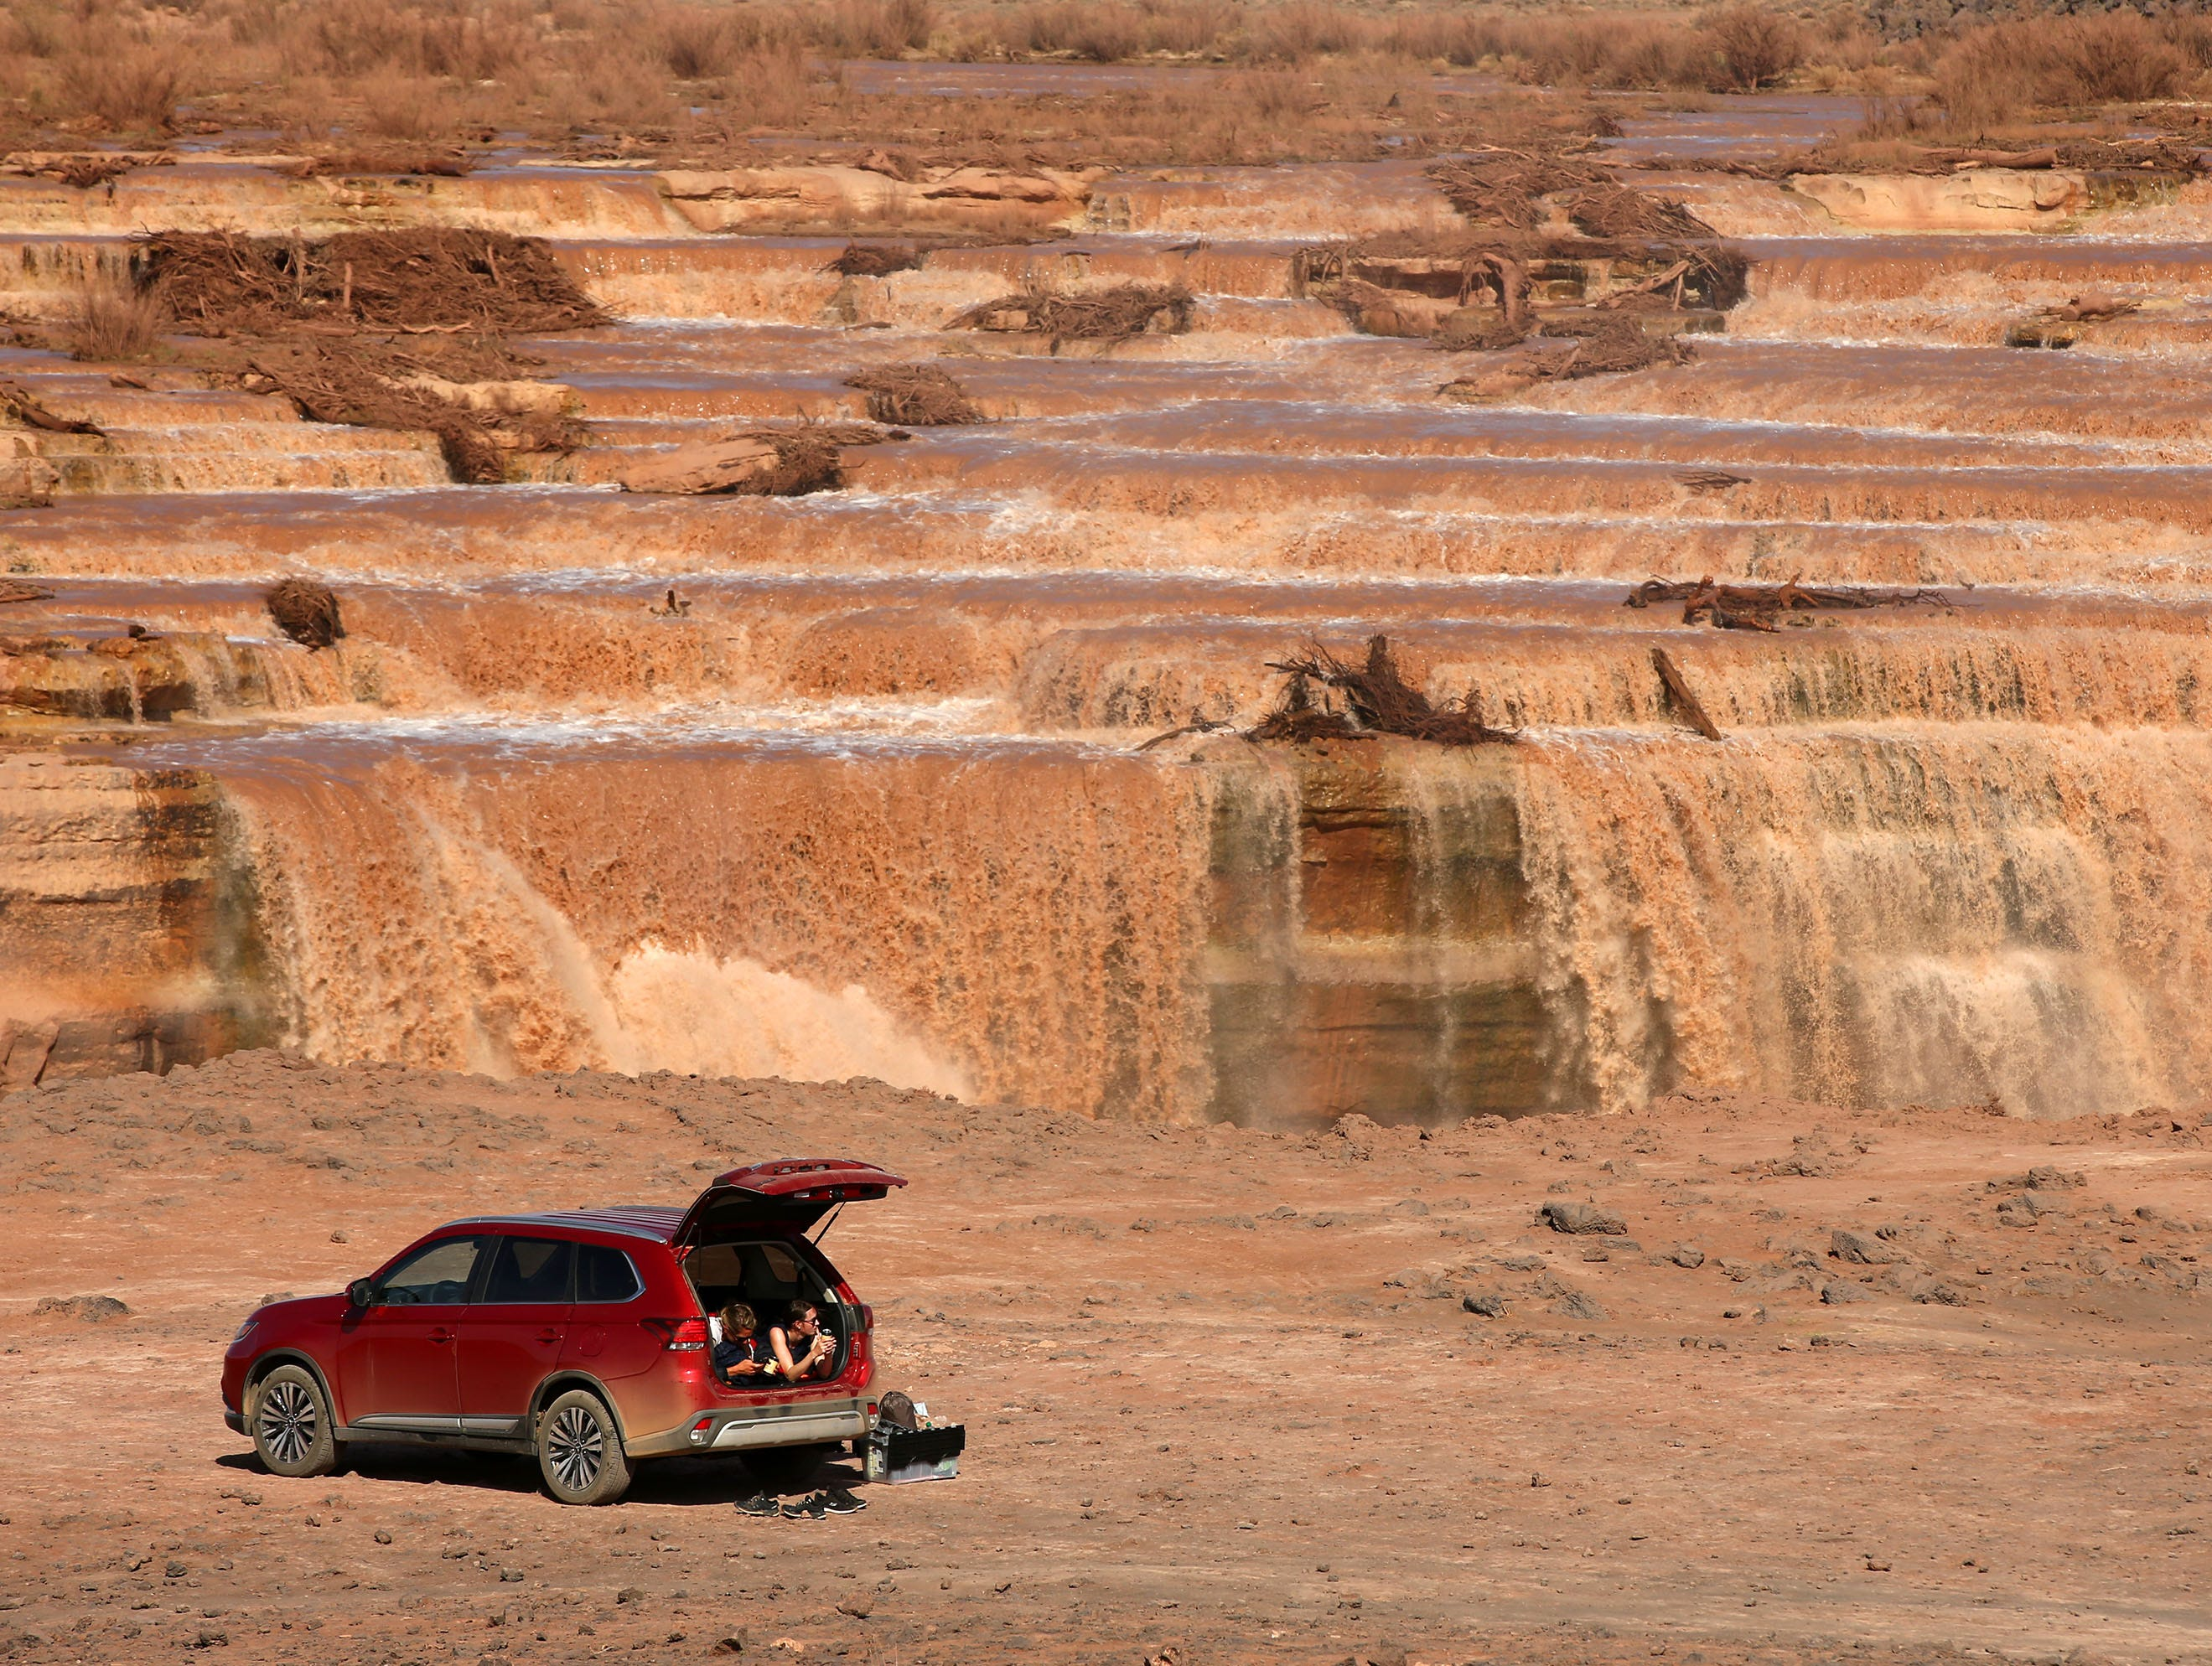 A tourist from Switzerland takes a midday break in a car at Grand Falls in the Painted Desert on the Navajo Nation on March 28, 2019, near Leupp, Arizona. Melted snow and rain travels down the Little Colorado River to the 185-foot fall a.k.a. Chocolate Falls. Grand Falls is 18 feet taller than Niagara Falls.